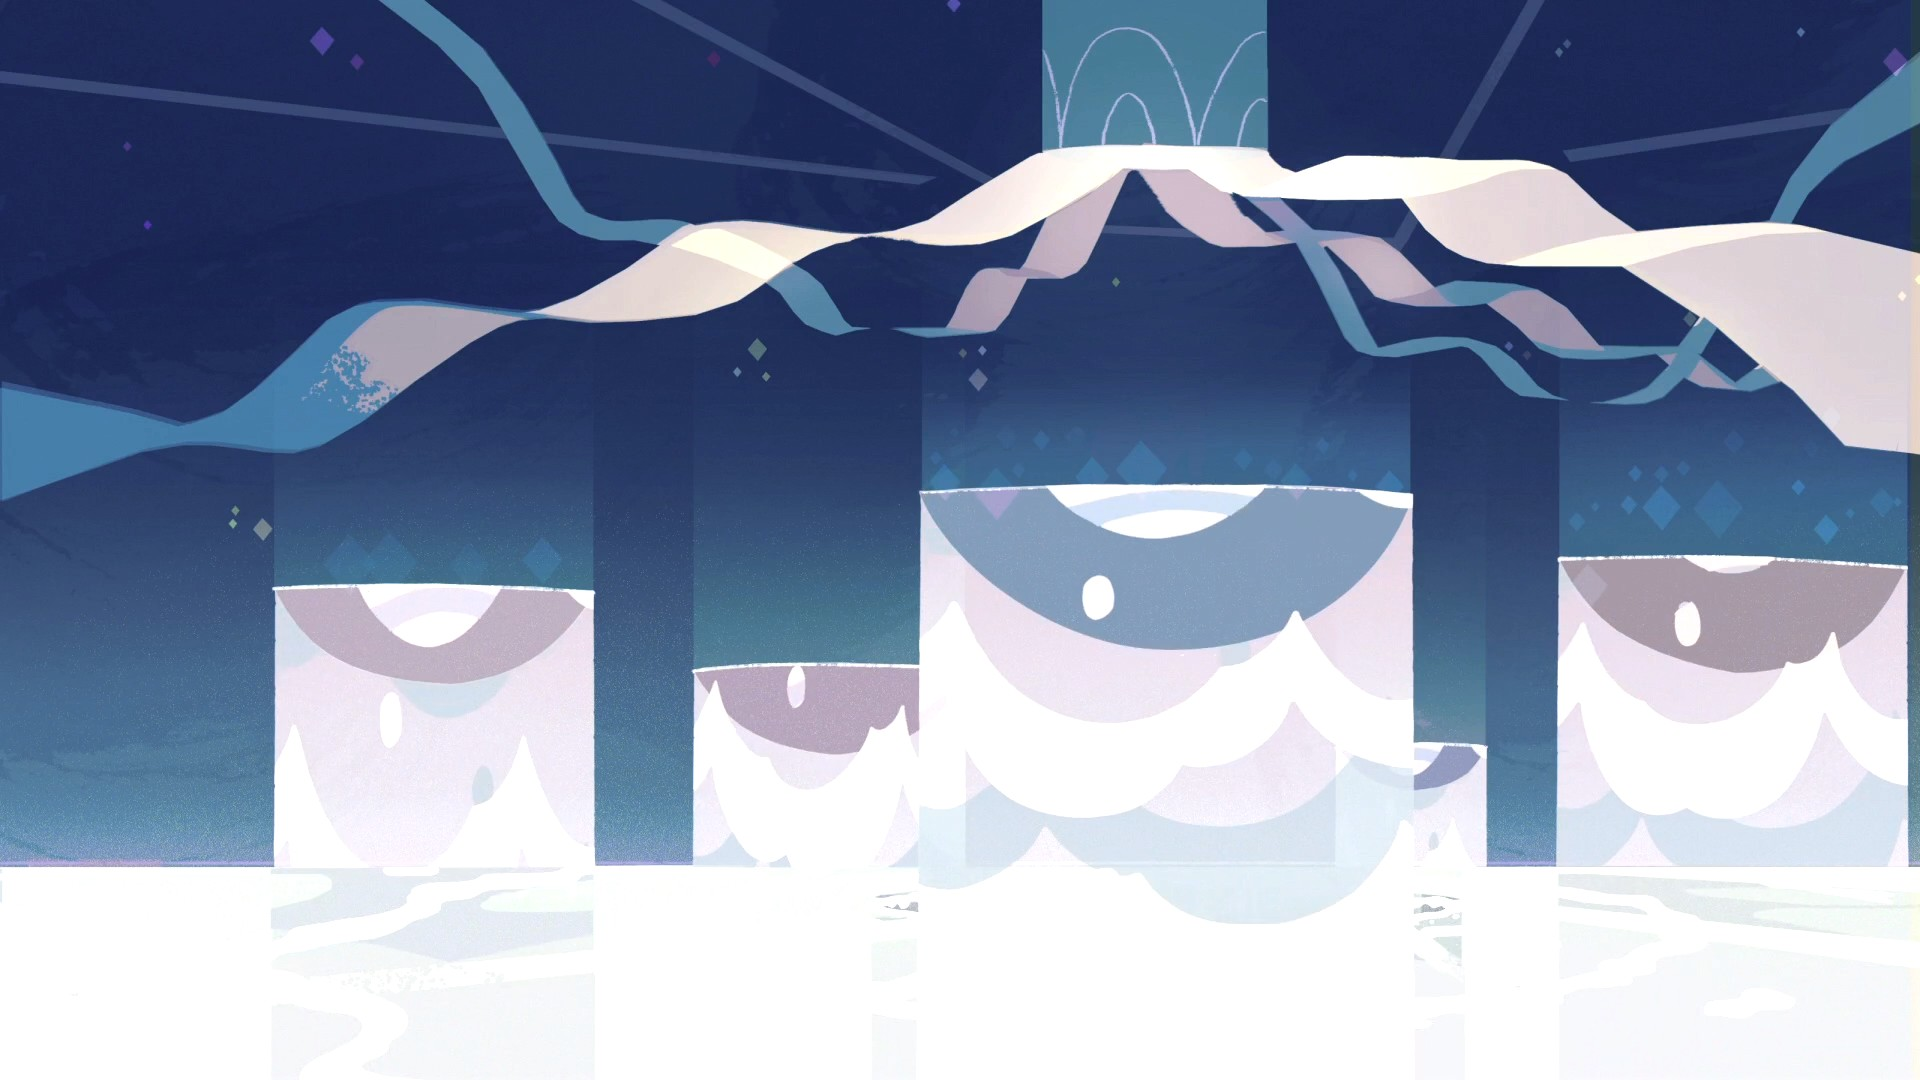 44 Steven Universe Wallpapers Download Free Awesome